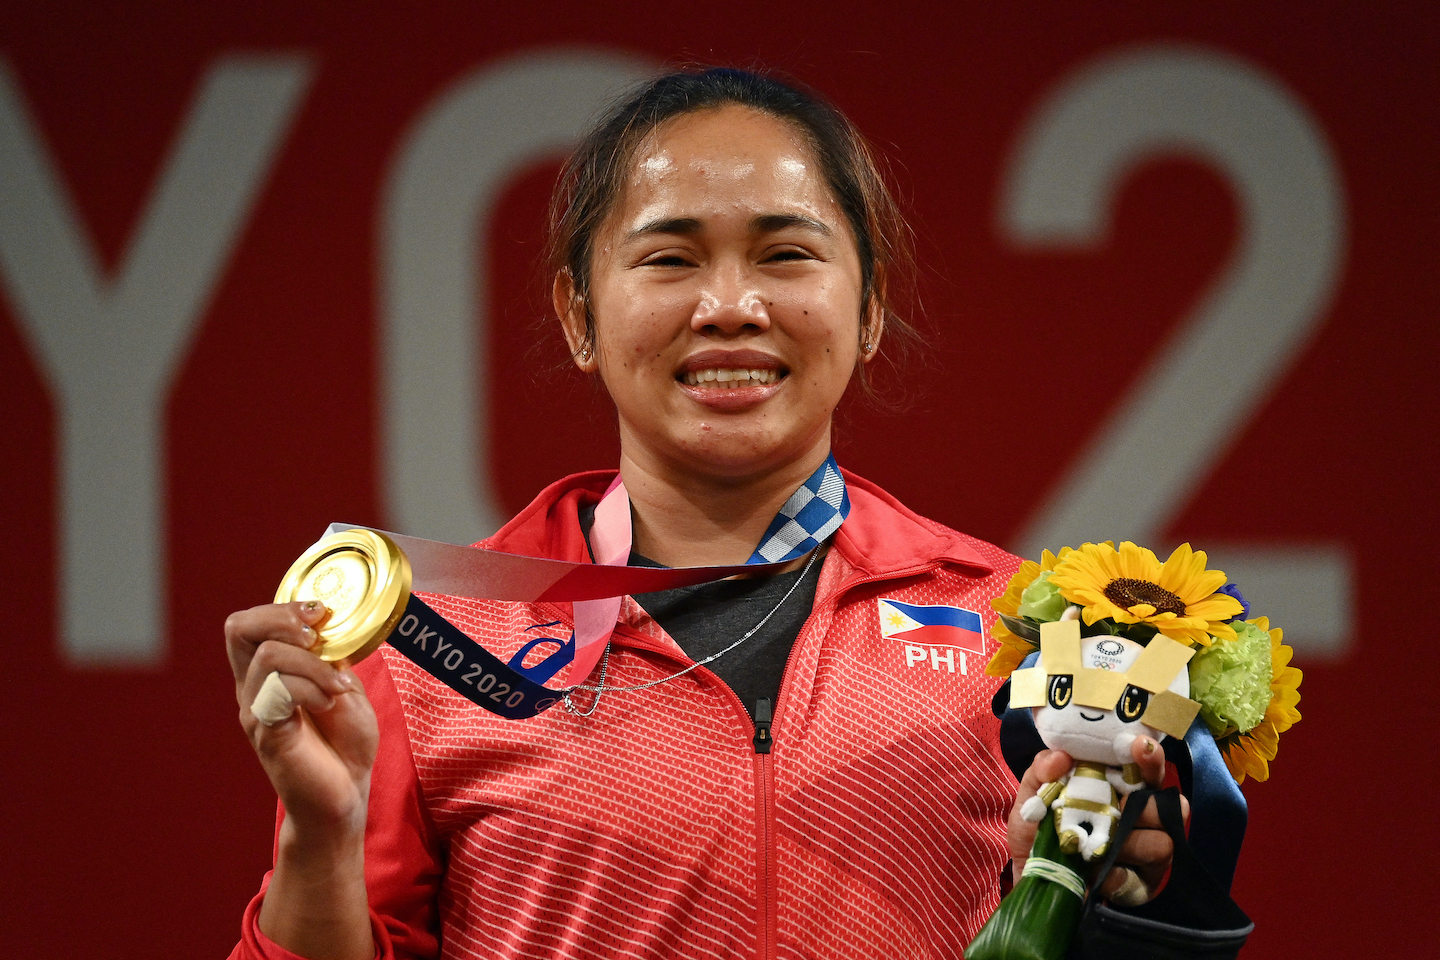 Philippines' First Olympic Gold Isn't Just a Sporting Victory. It Represents Much More. thumbnail